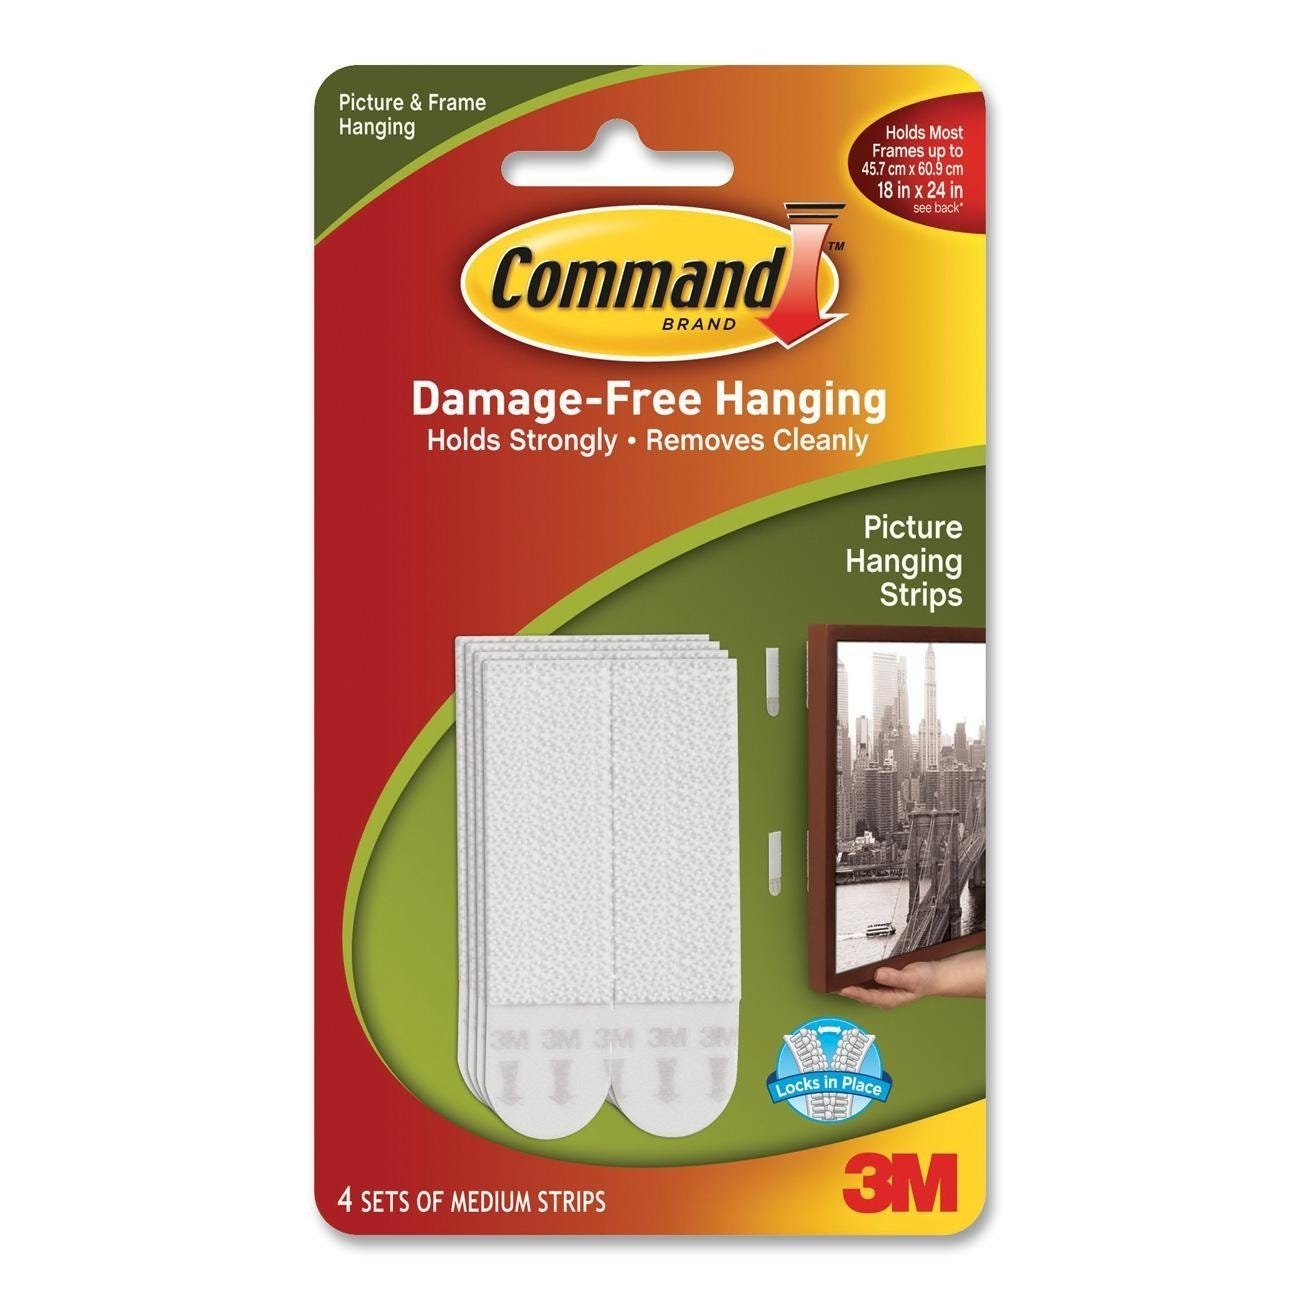 4 x 3M COMMAND DAMAGE-FREE HANGING STRIPS